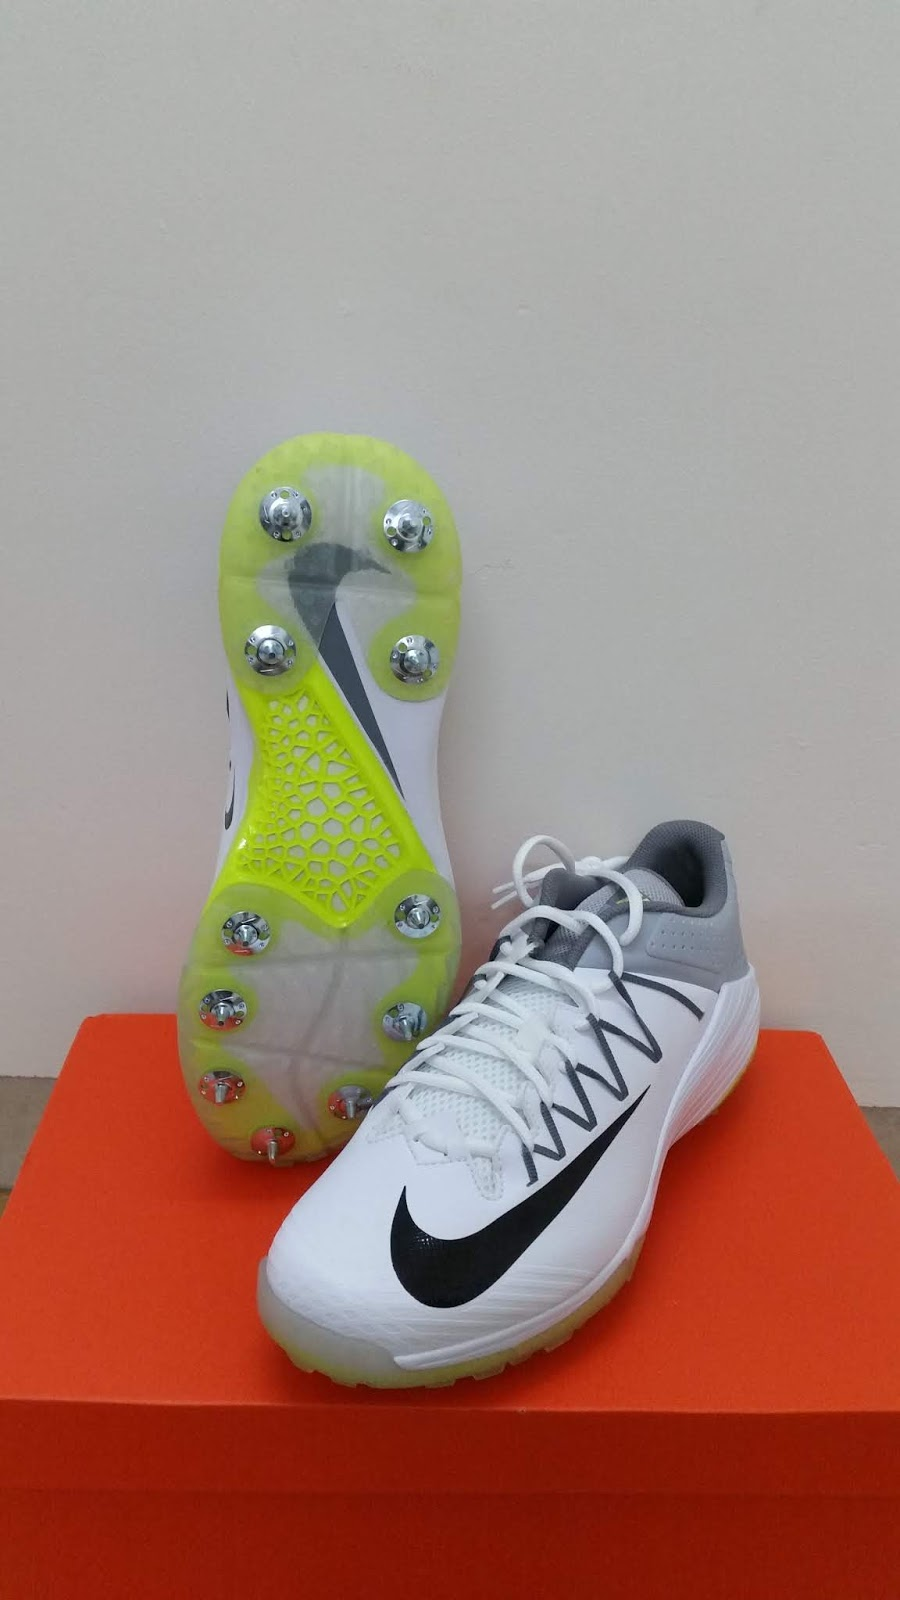 4acf9a335bdb The Nike DOMAIN 2 are full metal spikes cricket shoes which are removable  post-match.